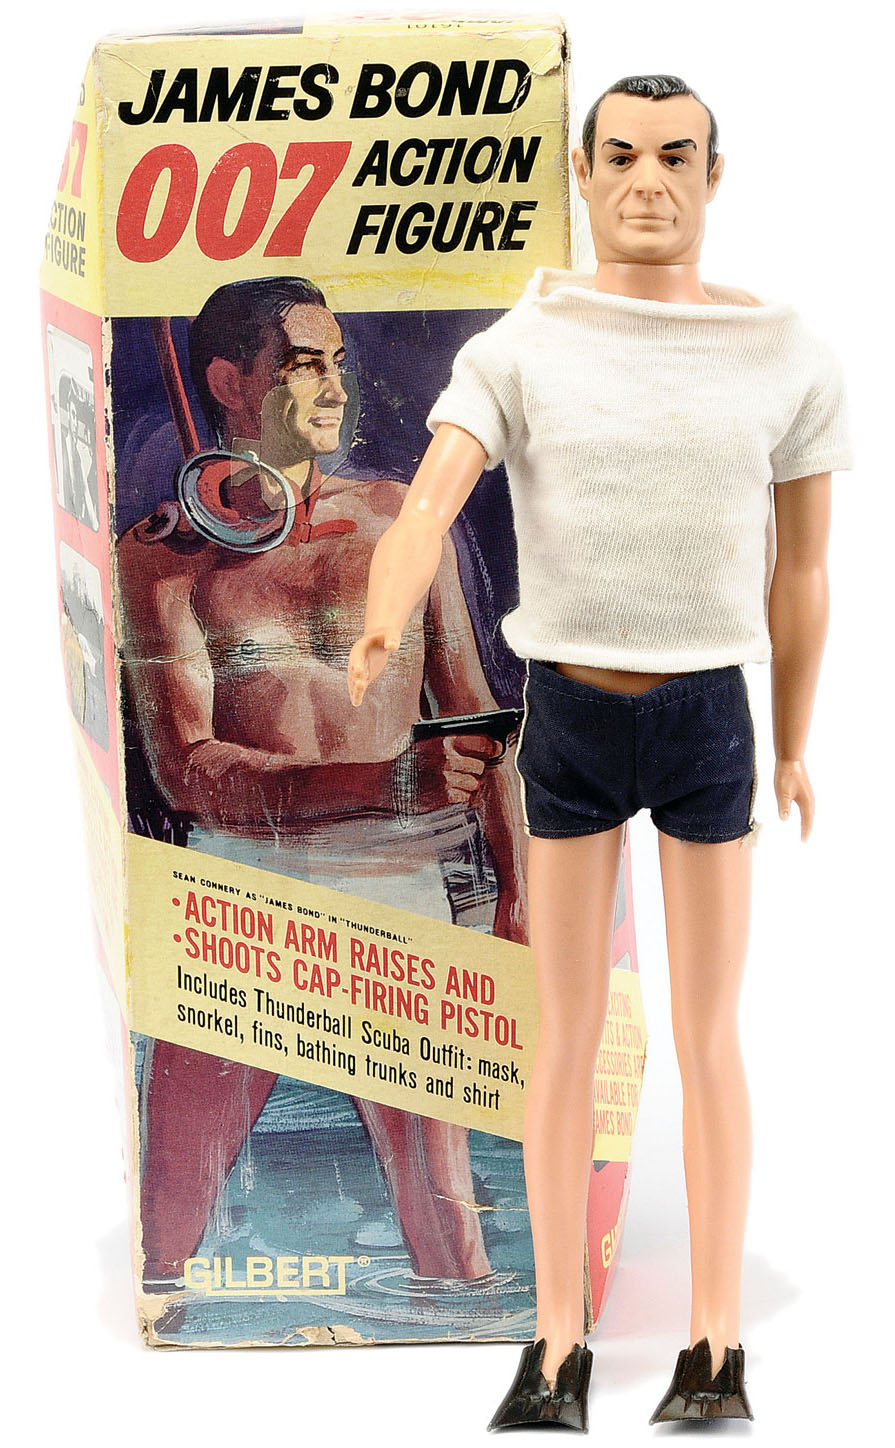 James Bond 007 Thunderball Action Figure by Gilbert